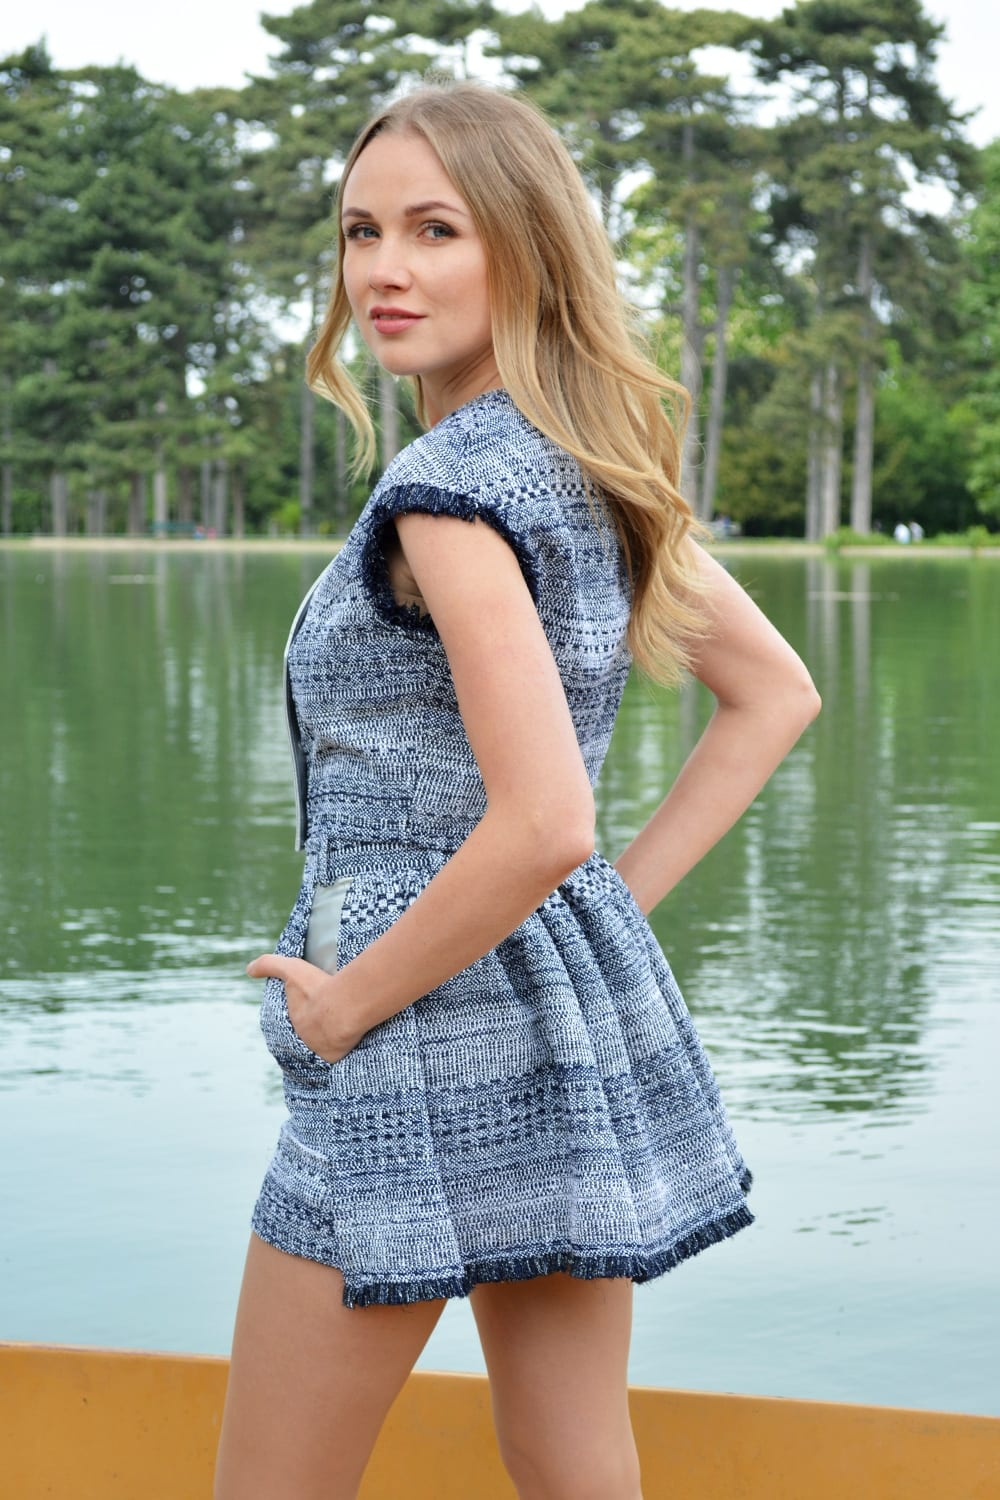 Women's tweed set. Blue and white tweed set. Short effect skirt back. Asymmetrical top without sleeves. Summer collection by the French stylist Erik Schaix.